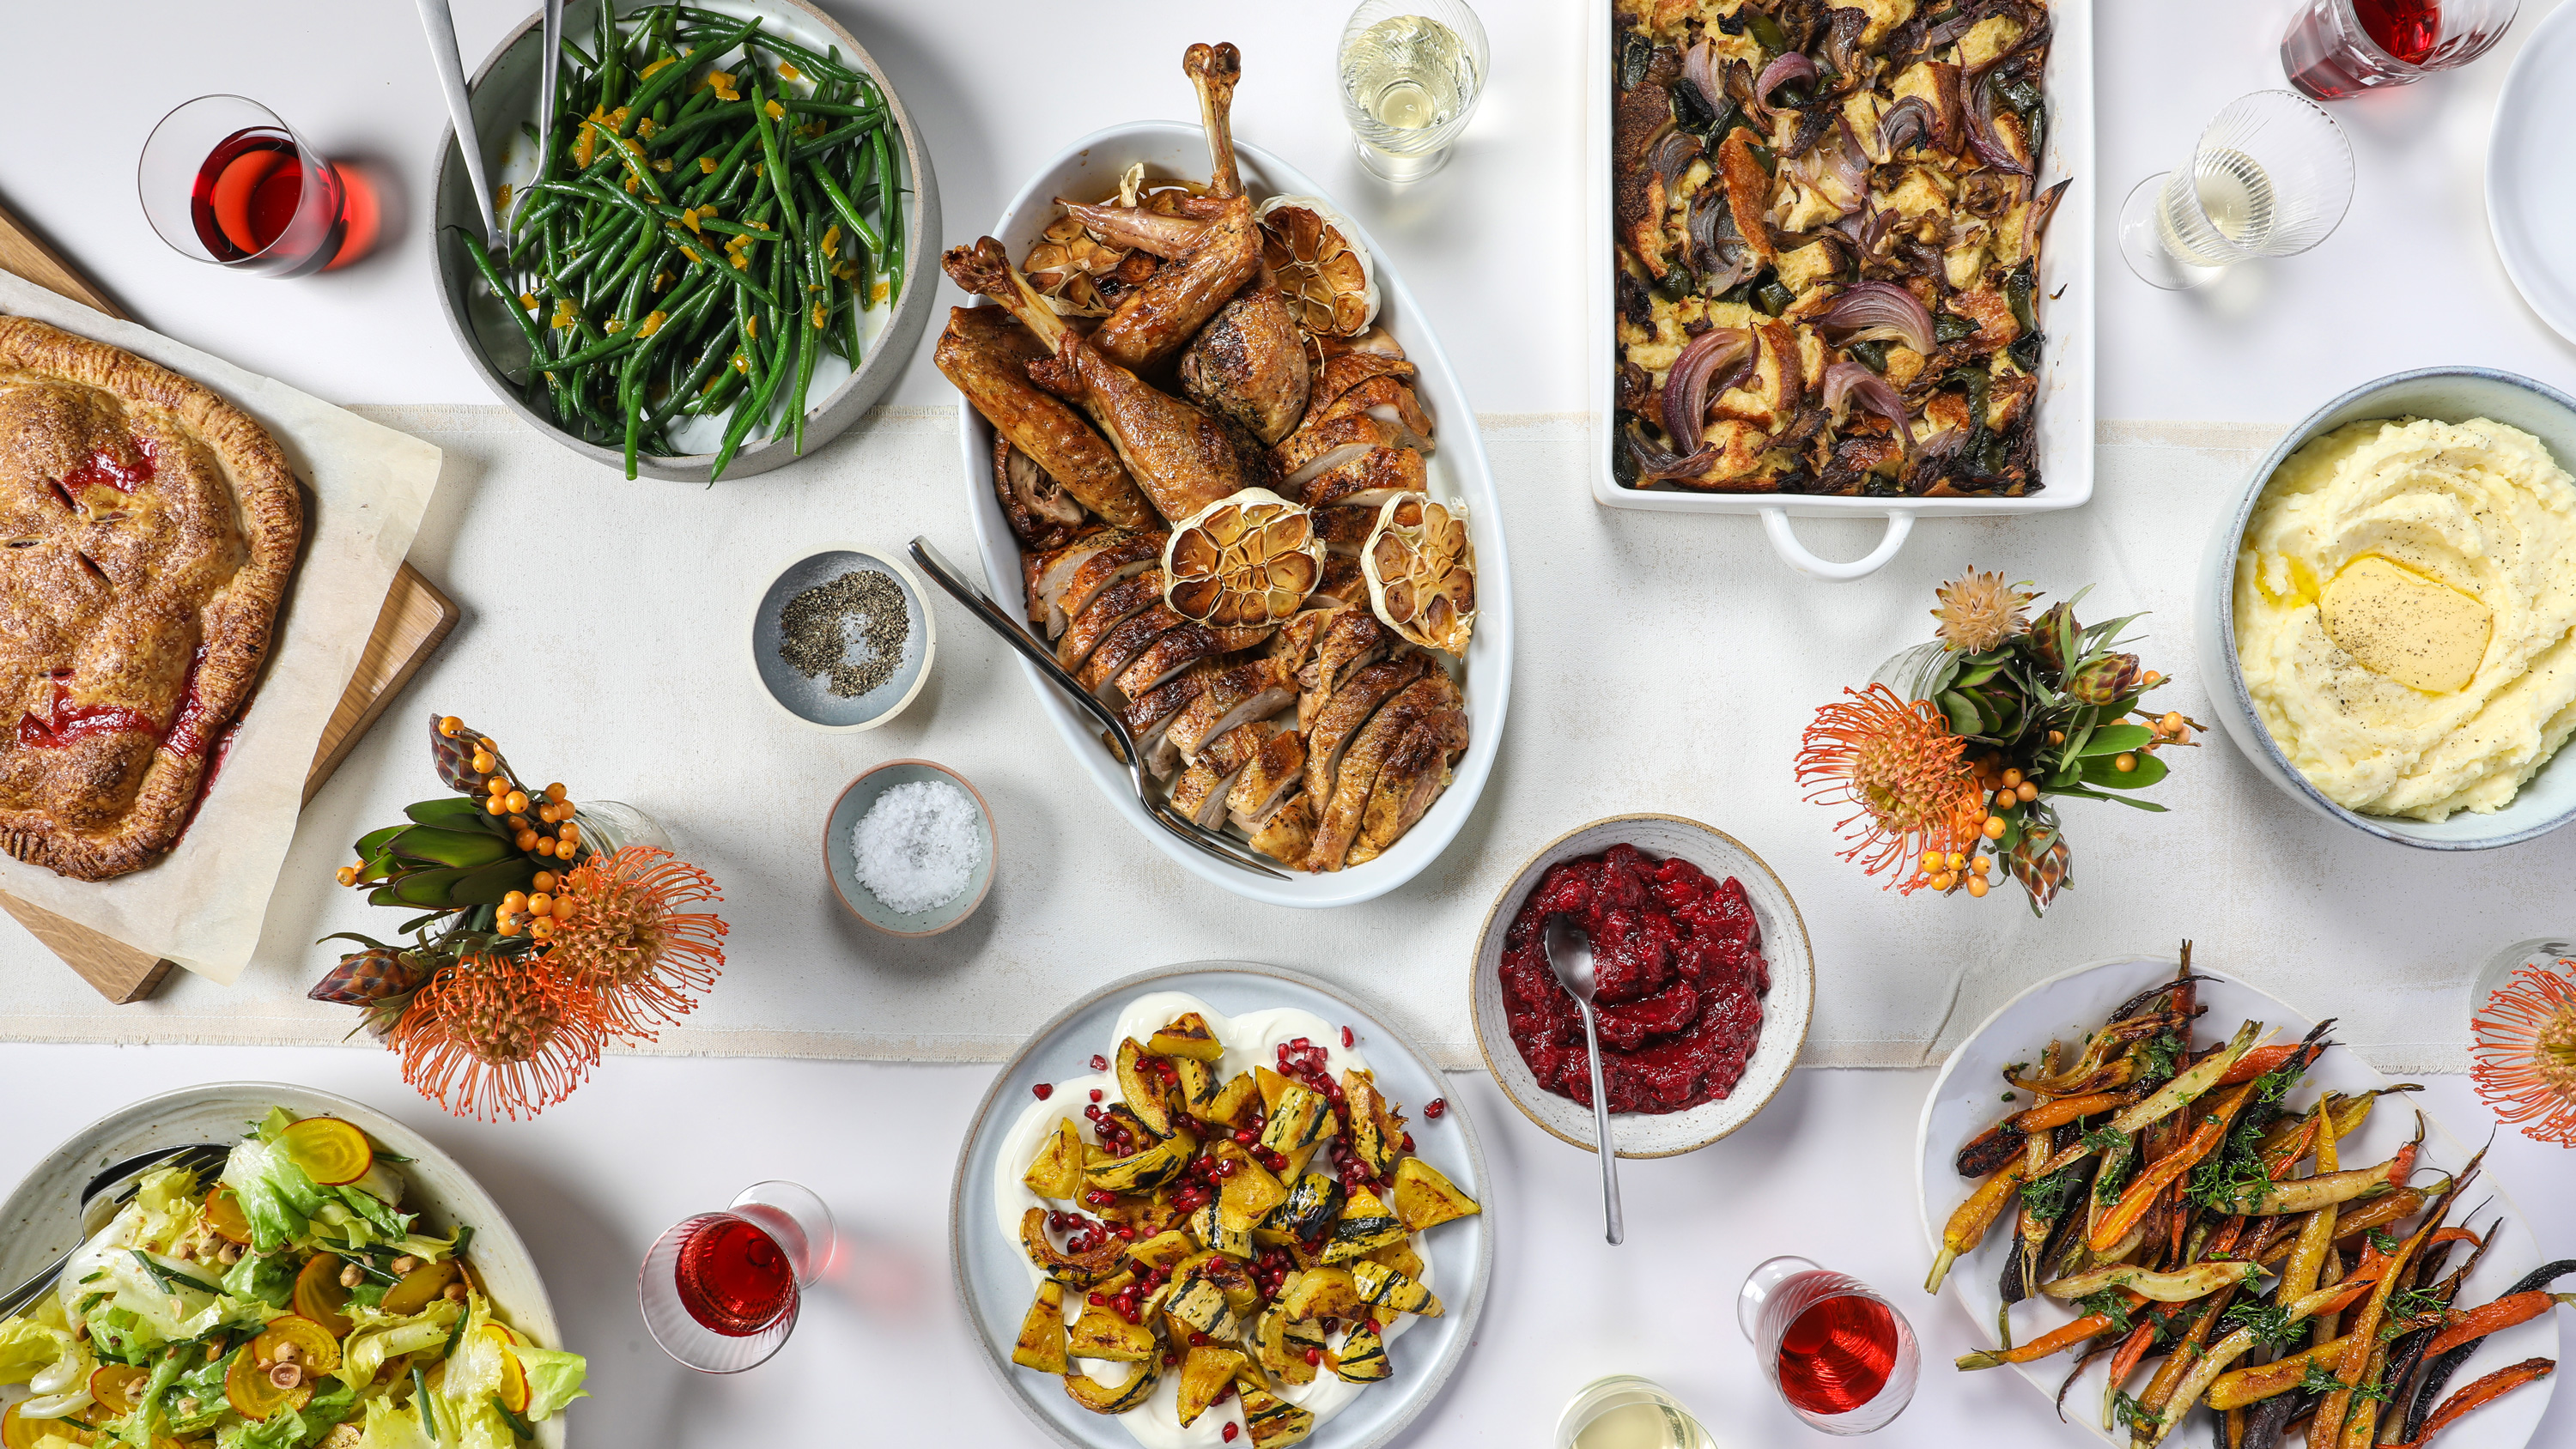 The Ultimate Make-Ahead Thanksgiving Menu